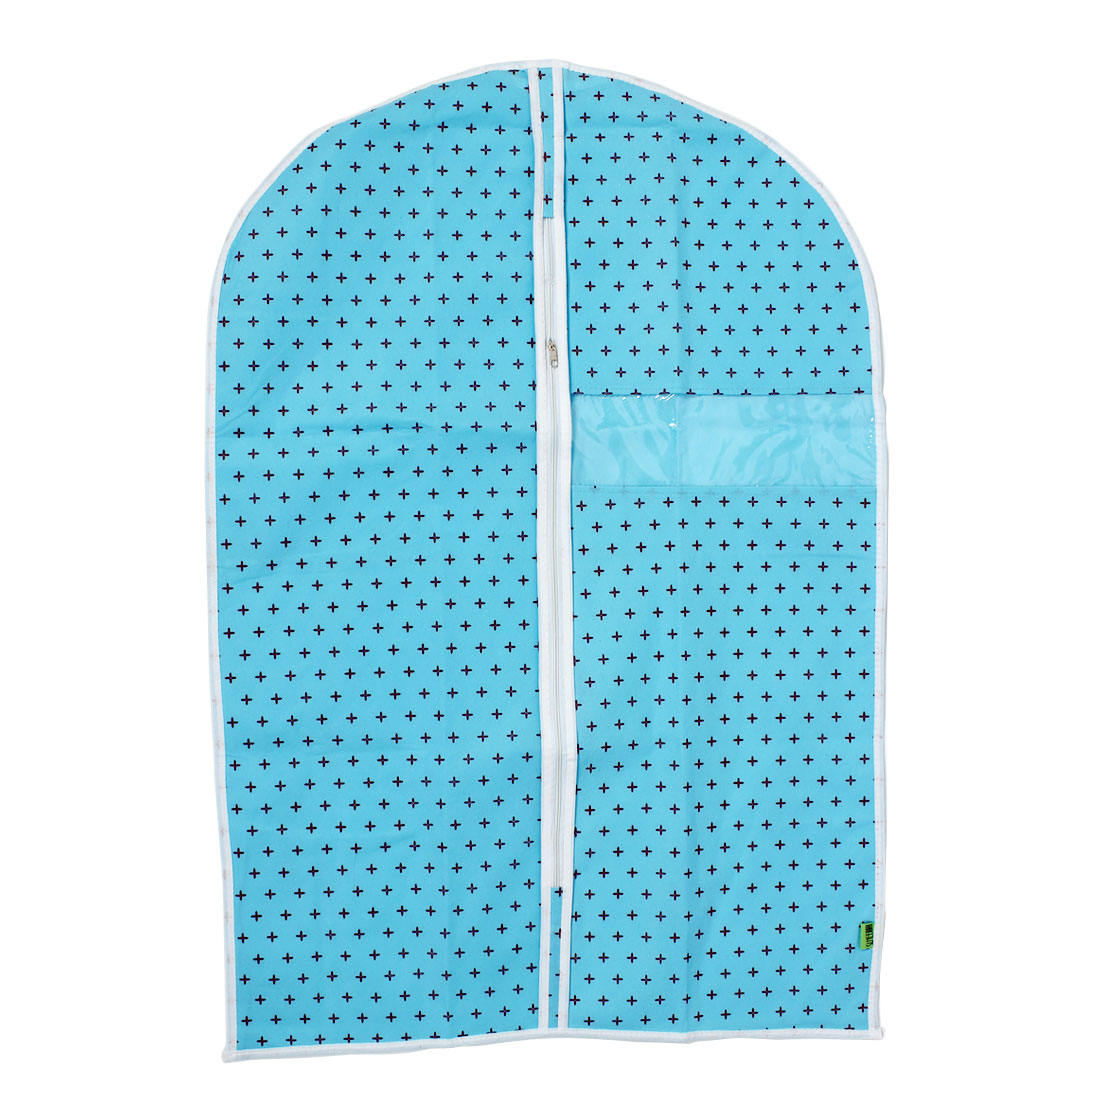 Wardrobe Hanging Clothing Garment Dust Cover Storage Organizer Bag Blue